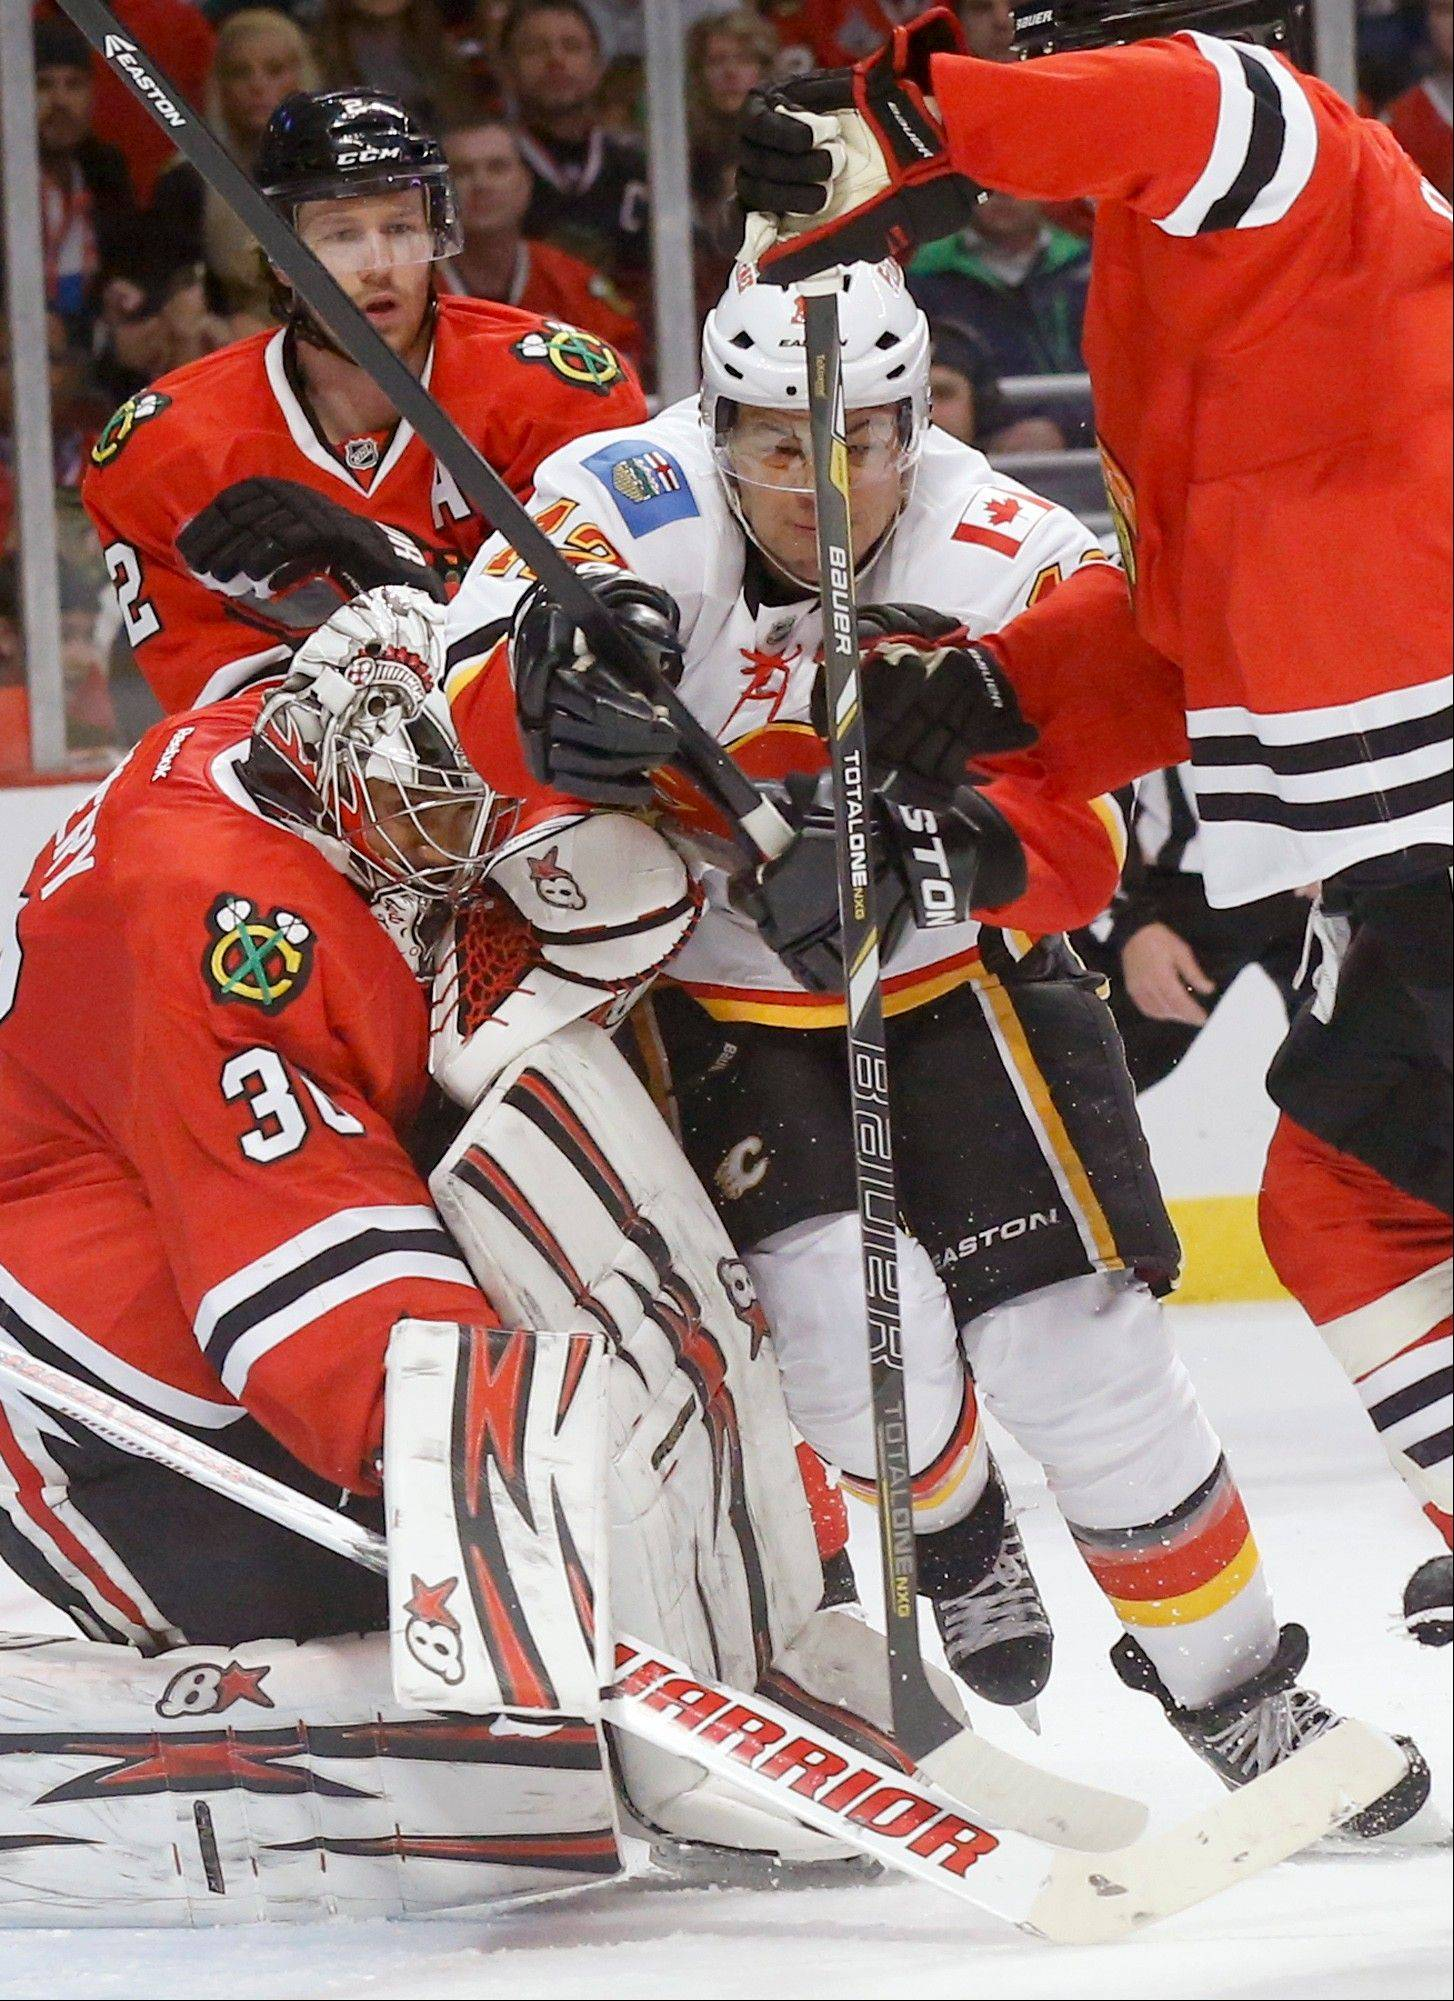 Calgary Flames right wing Jarome Iginla, center, is sandwiched between Chicago Blackhawks goalie Ray Emery (30) and Brent Seabrook during the first period of an NHL hockey game Tuesday, March 26, 2013 in Chicago.